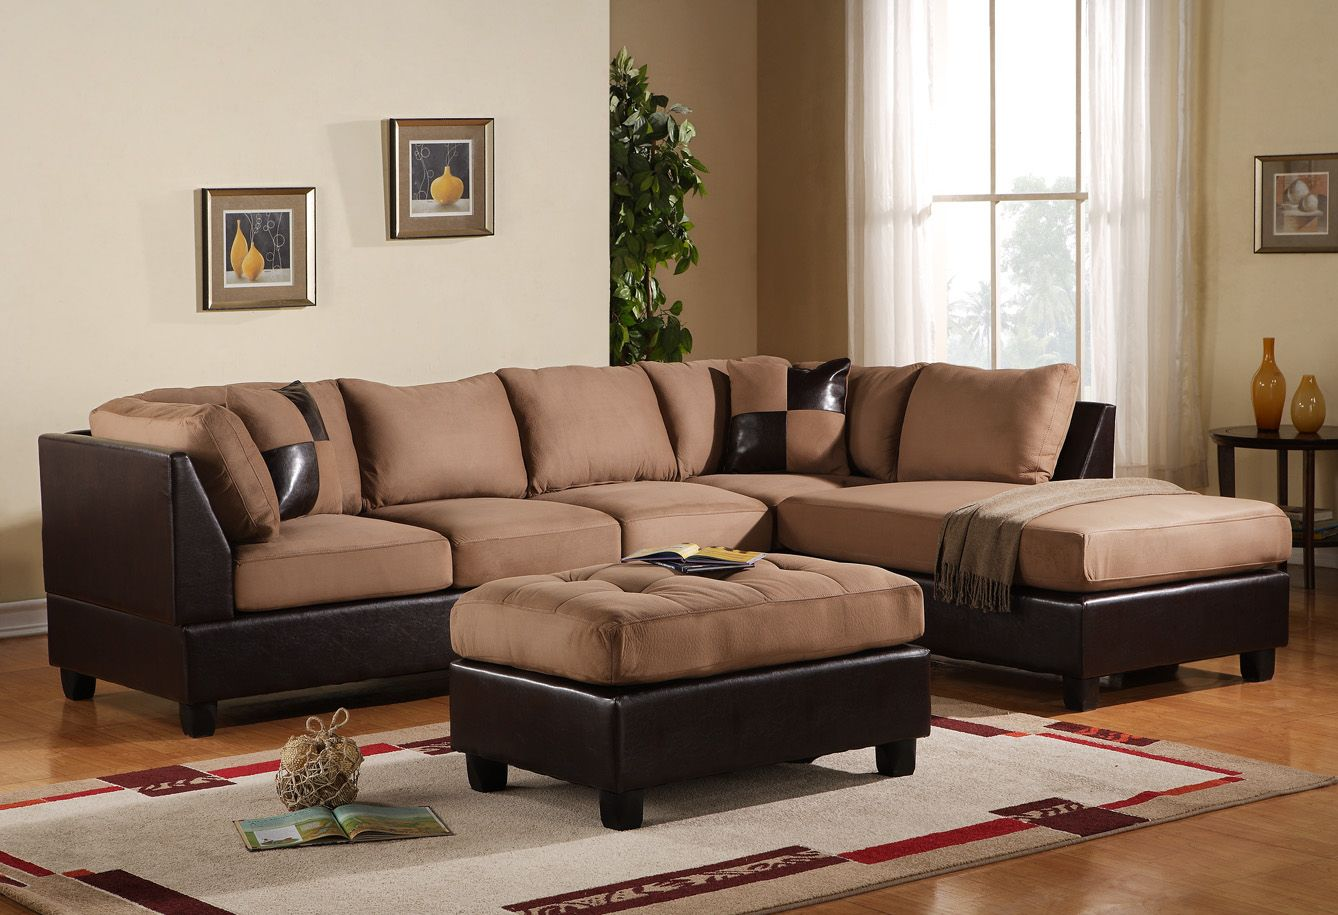 Interior Modern Vintage Living Room Design Espresso Platform Tan Brown Big Pillow Square Microfiber Sectional Sofa Sectional Sofa Couch Leather Couch Sectional